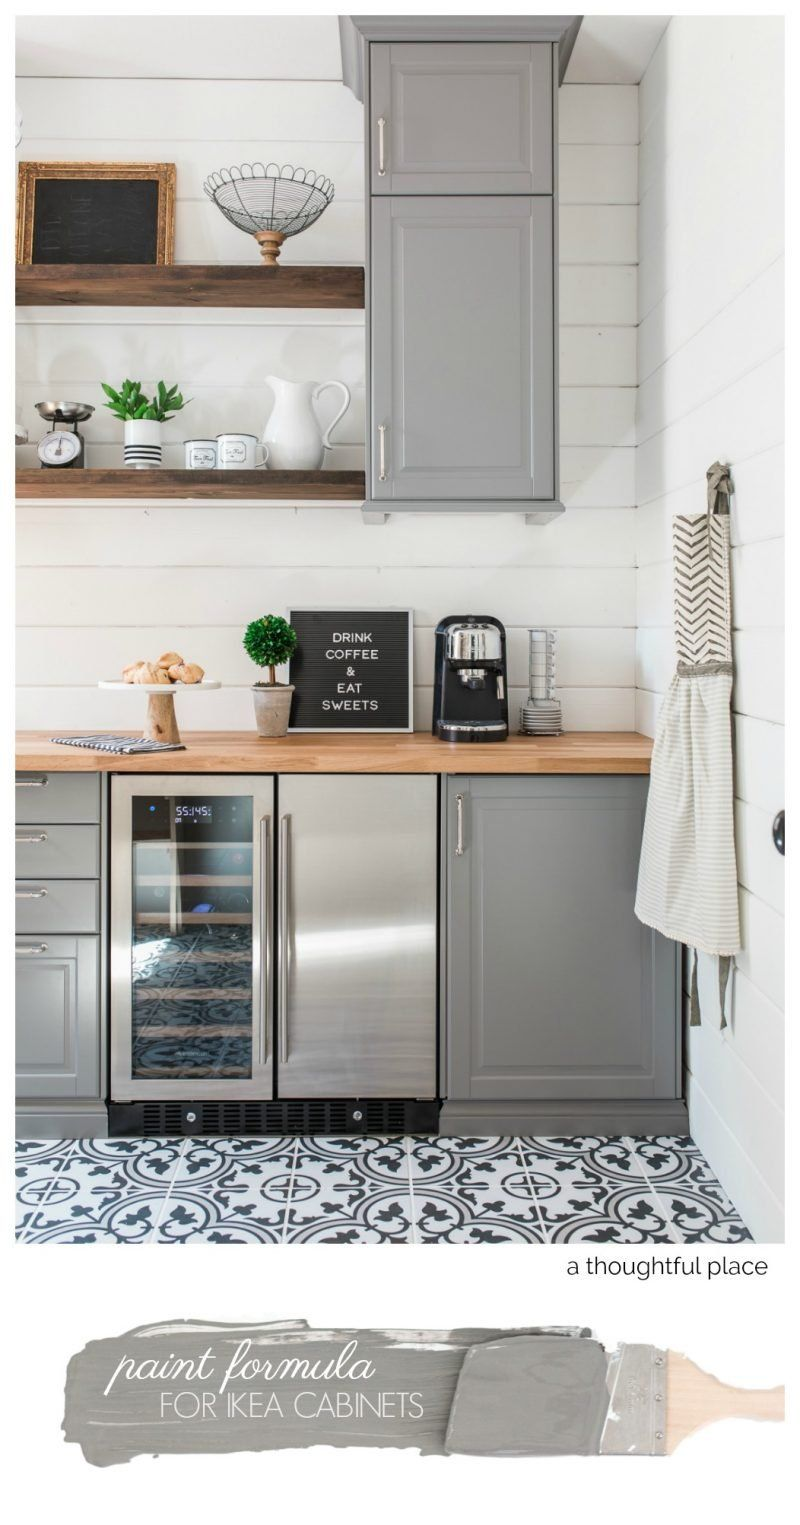 The Custom Color Paint Match Formula To These Ikea Cabinets Use Semi Gloss Paint Ikea Cabinets Ikea Kitchen Cabinets Ikea